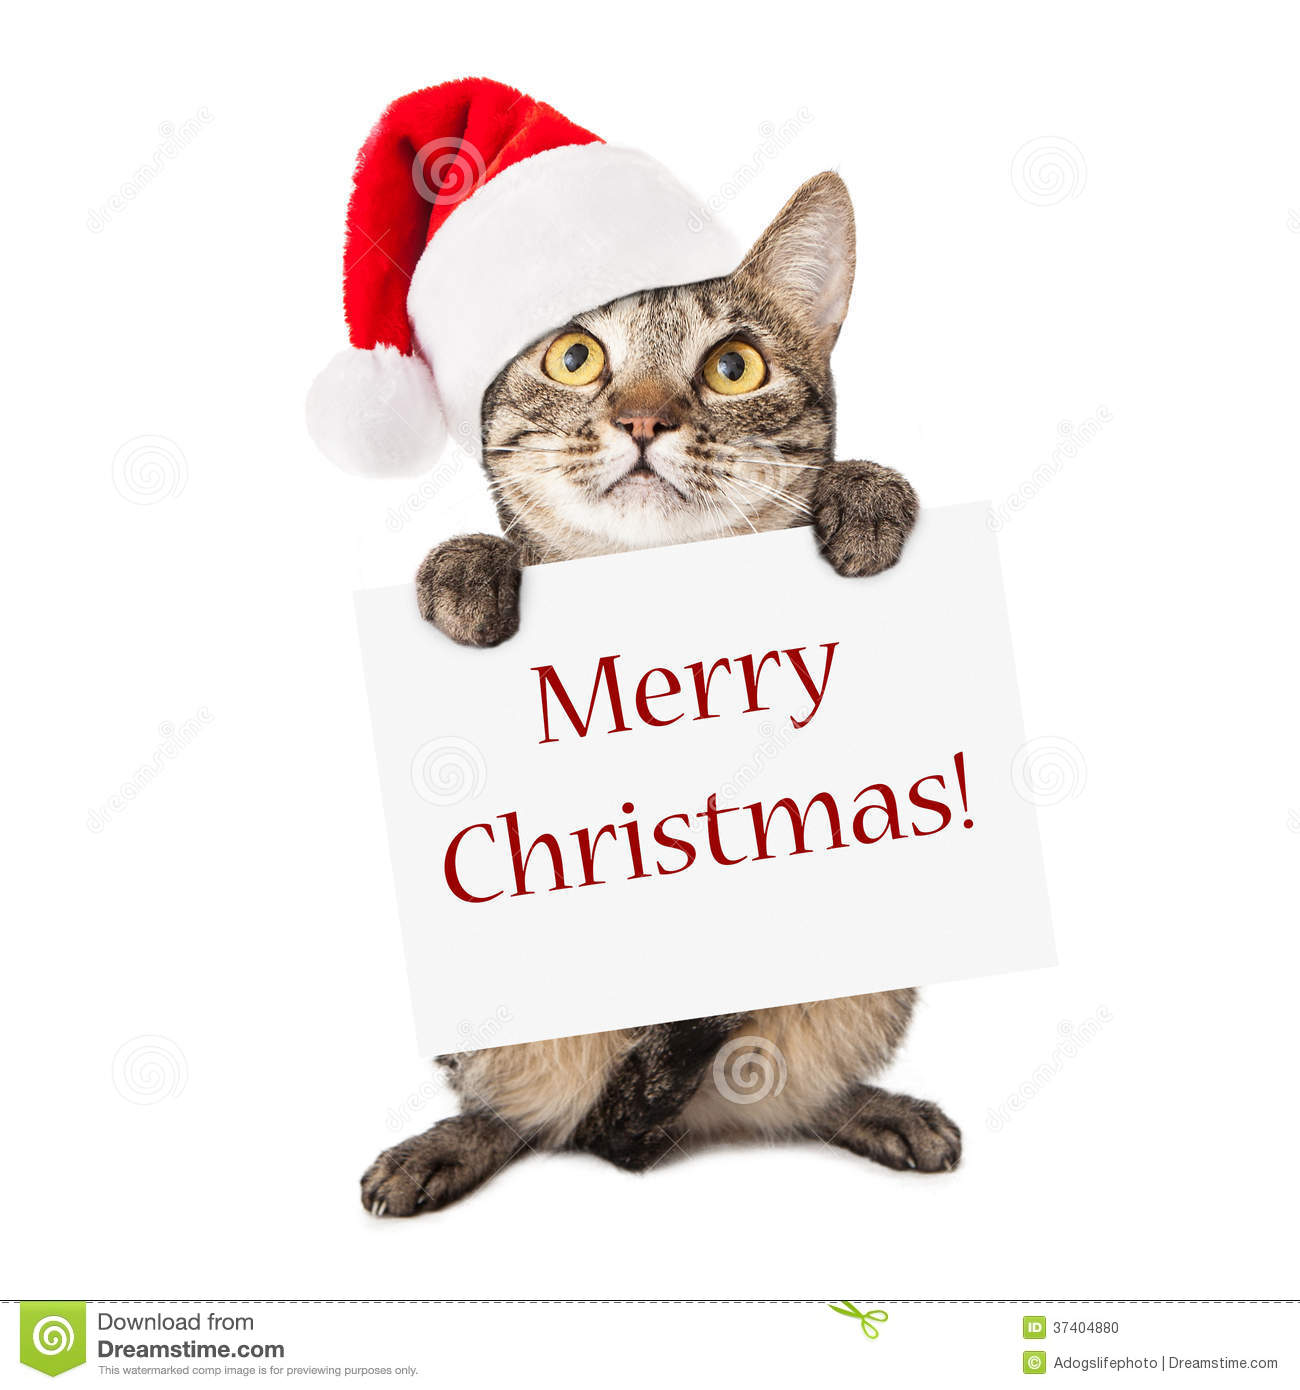 cat carrying merry christmas sign - Merry Christmas Cat